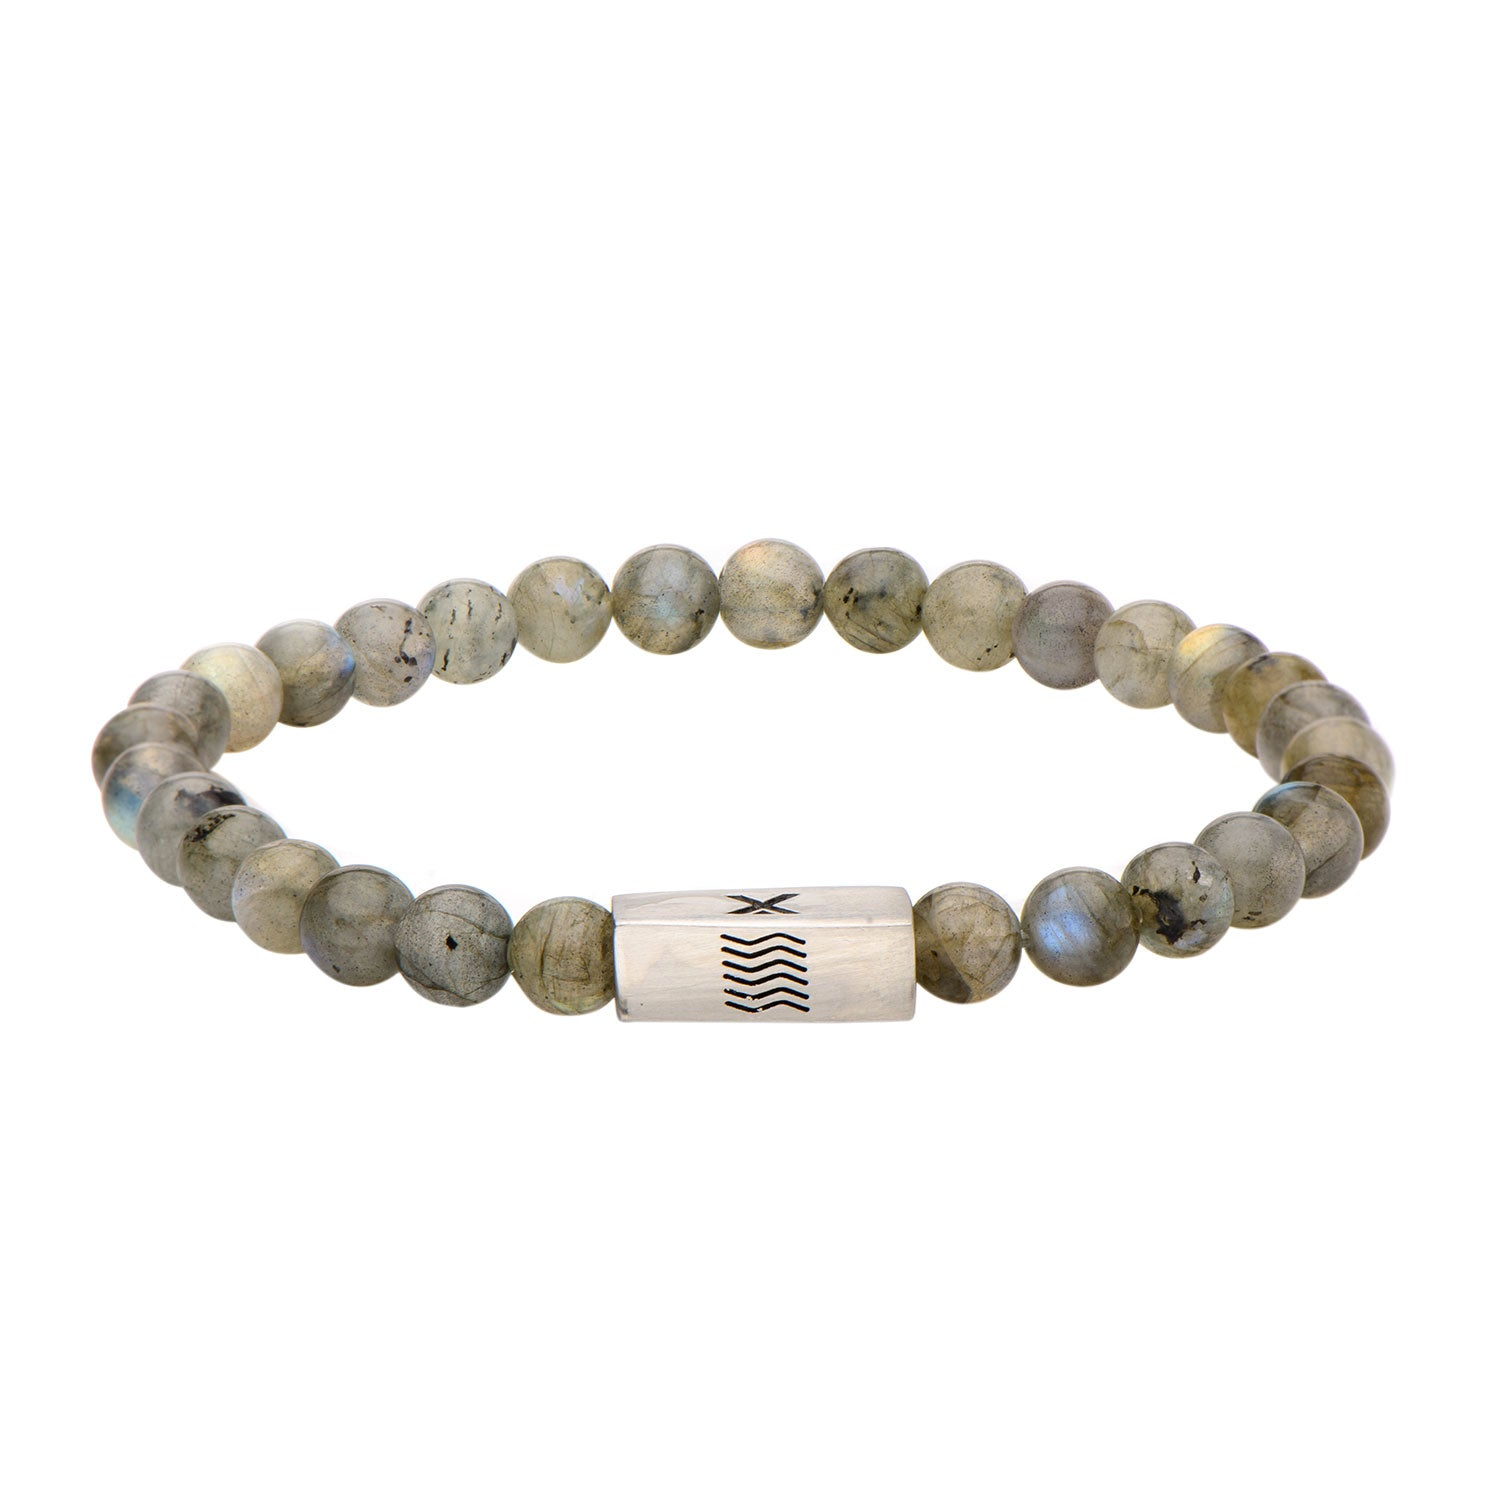 "Inox Jewelry 6mm Stainless Steel, Labradorite Gemstone 8"" Bracelet BREL03"